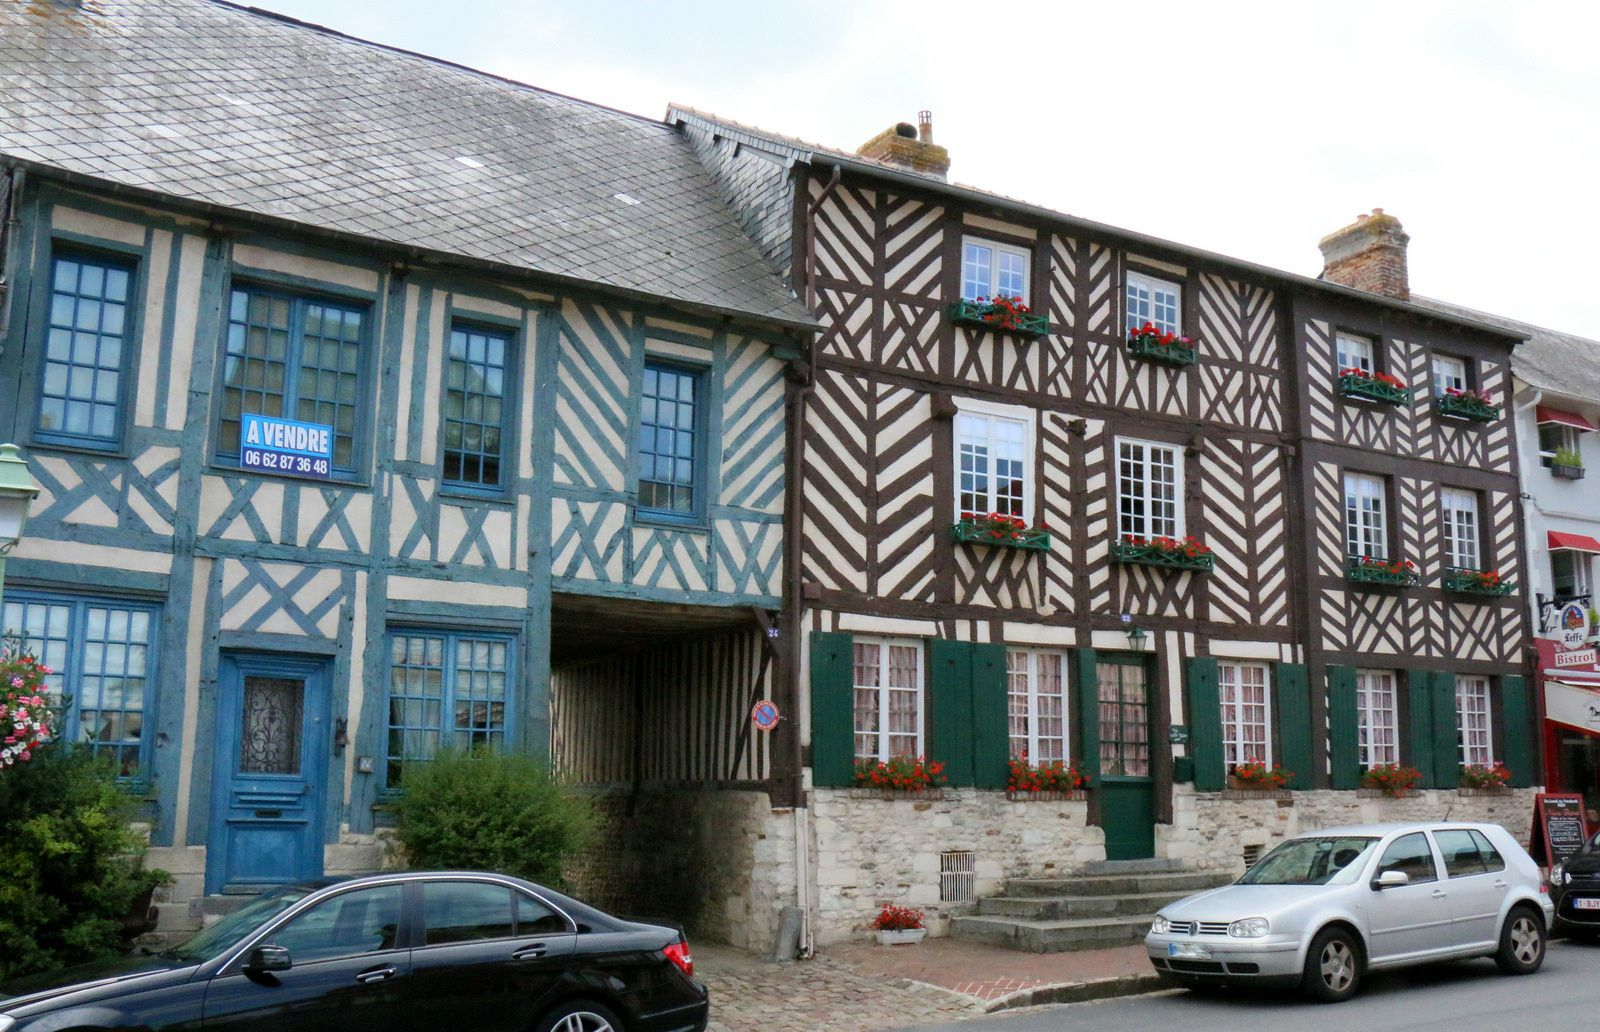 Maisons à colombages (1/2), Beaumont-en-Auge